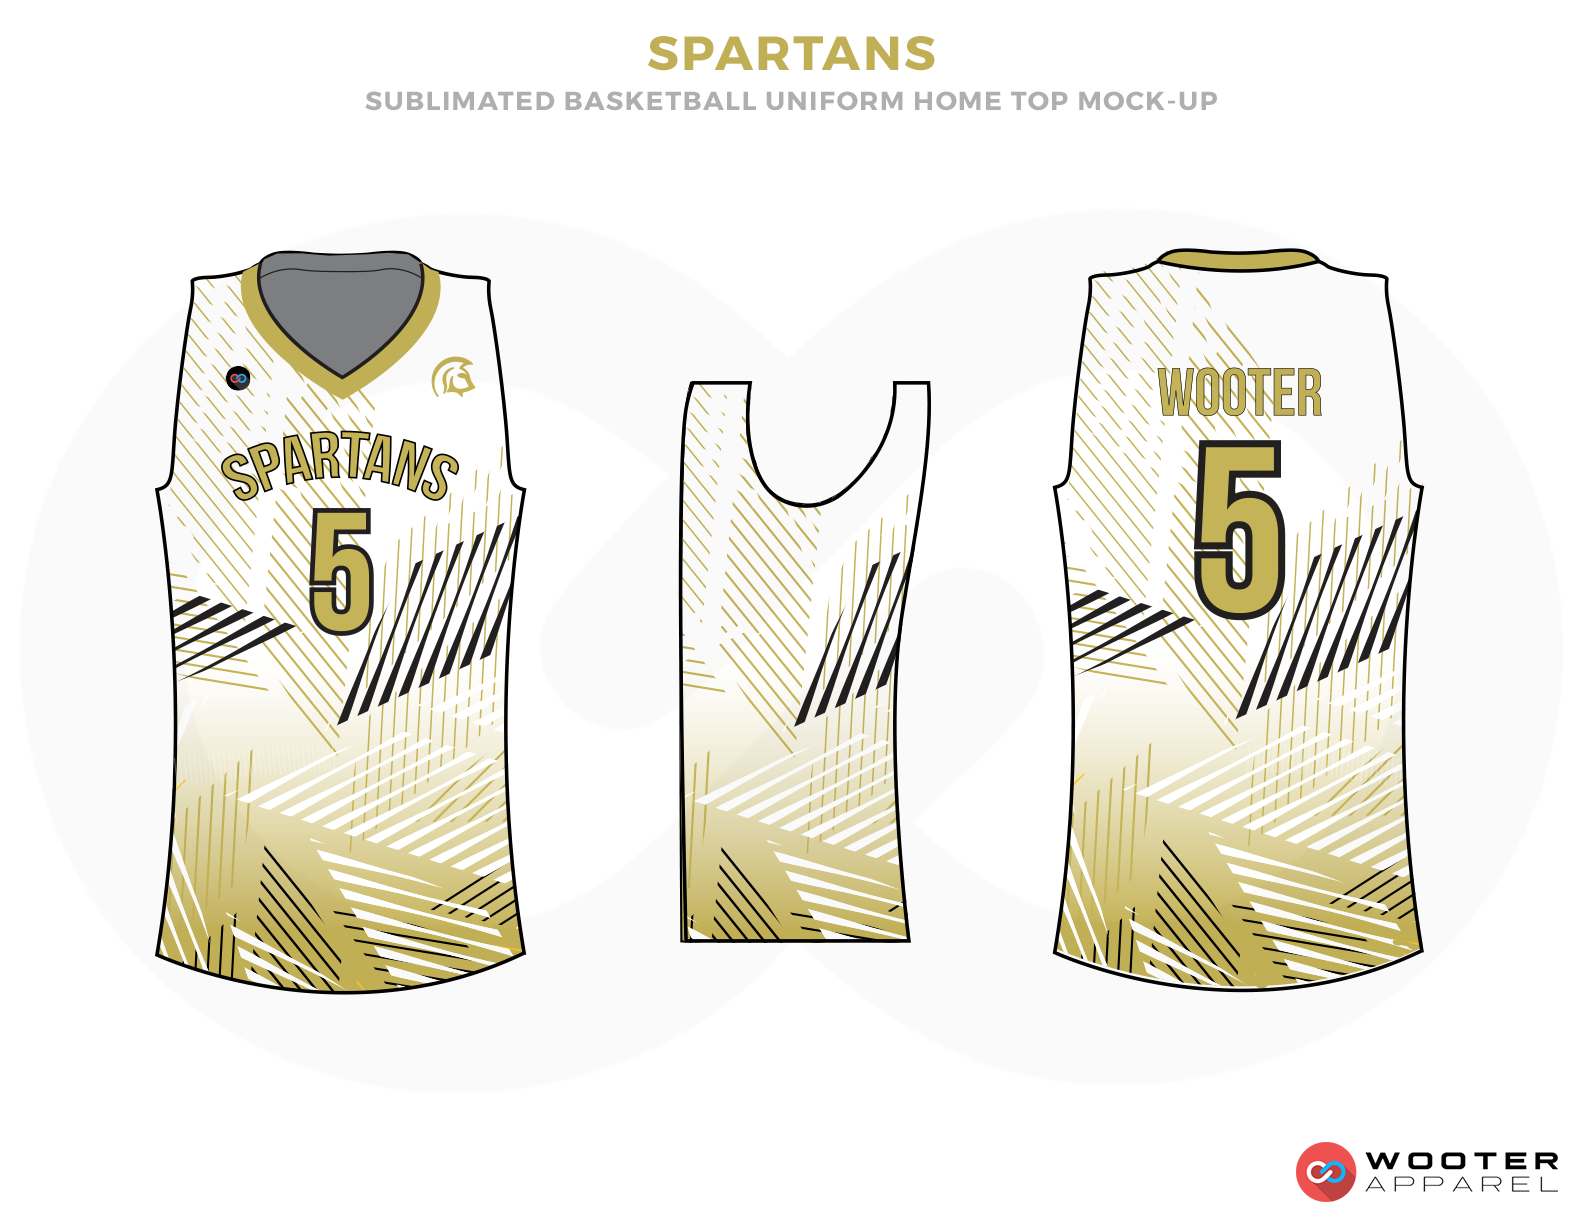 SPARTANS White Golden and Black Basketball Uniforms, Jersey and Shirts